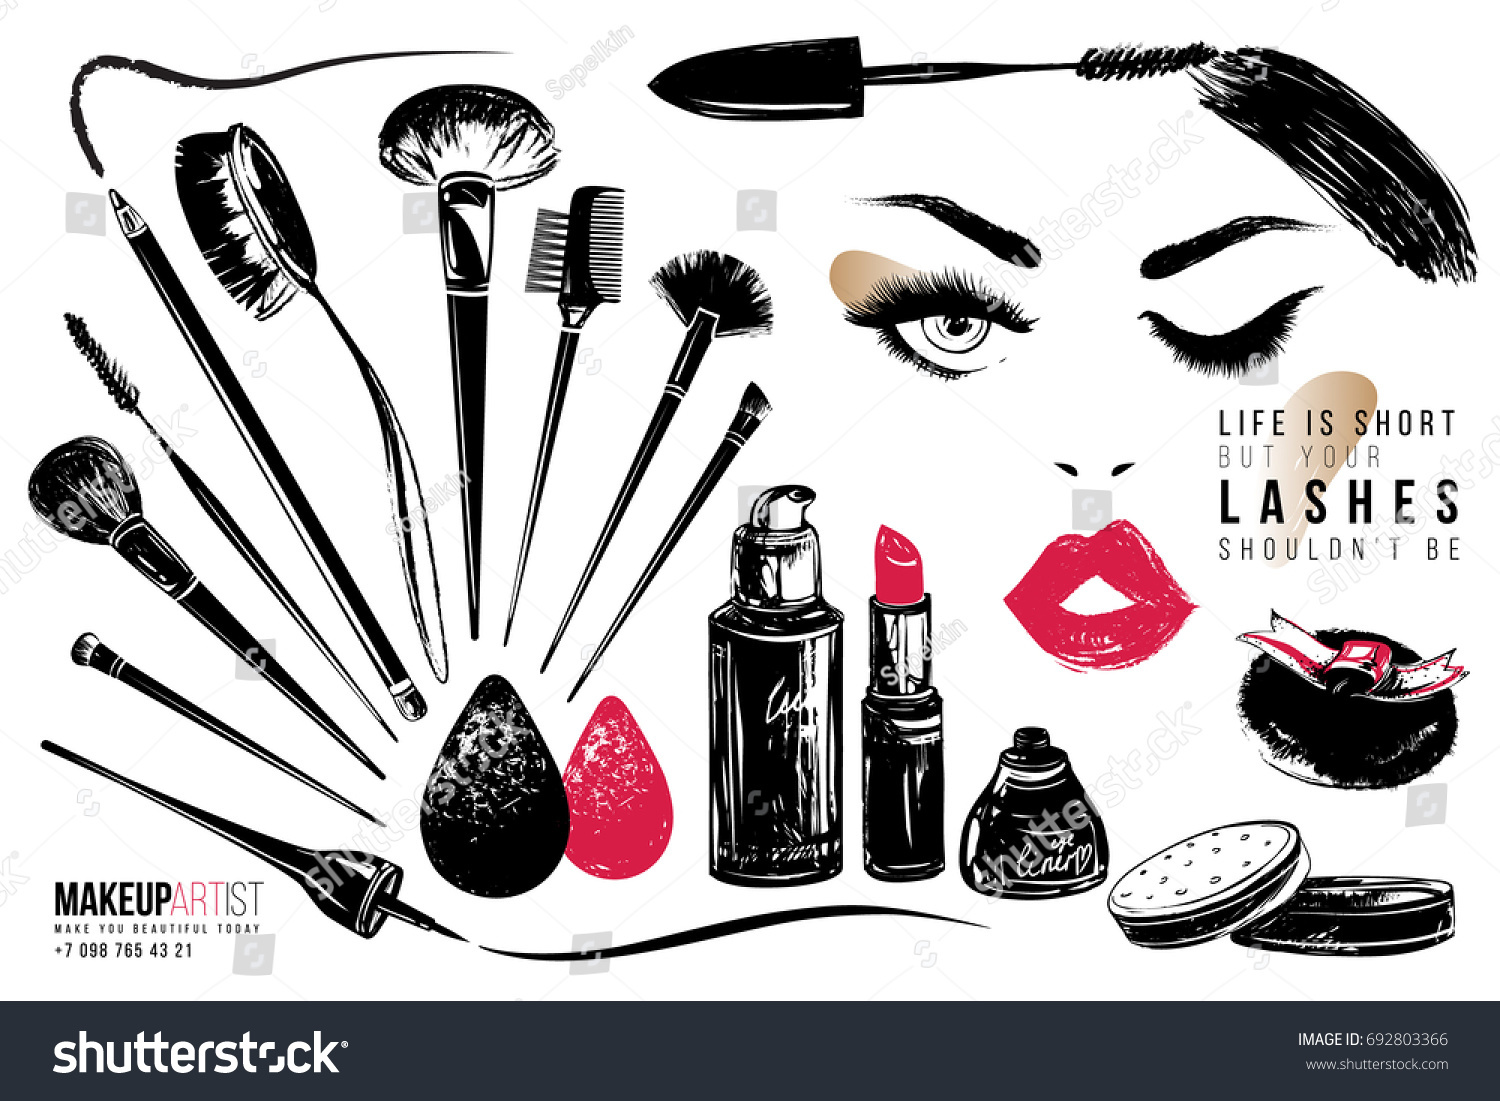 Makeup Artist Tools Beauty Products Vector Stock Vector